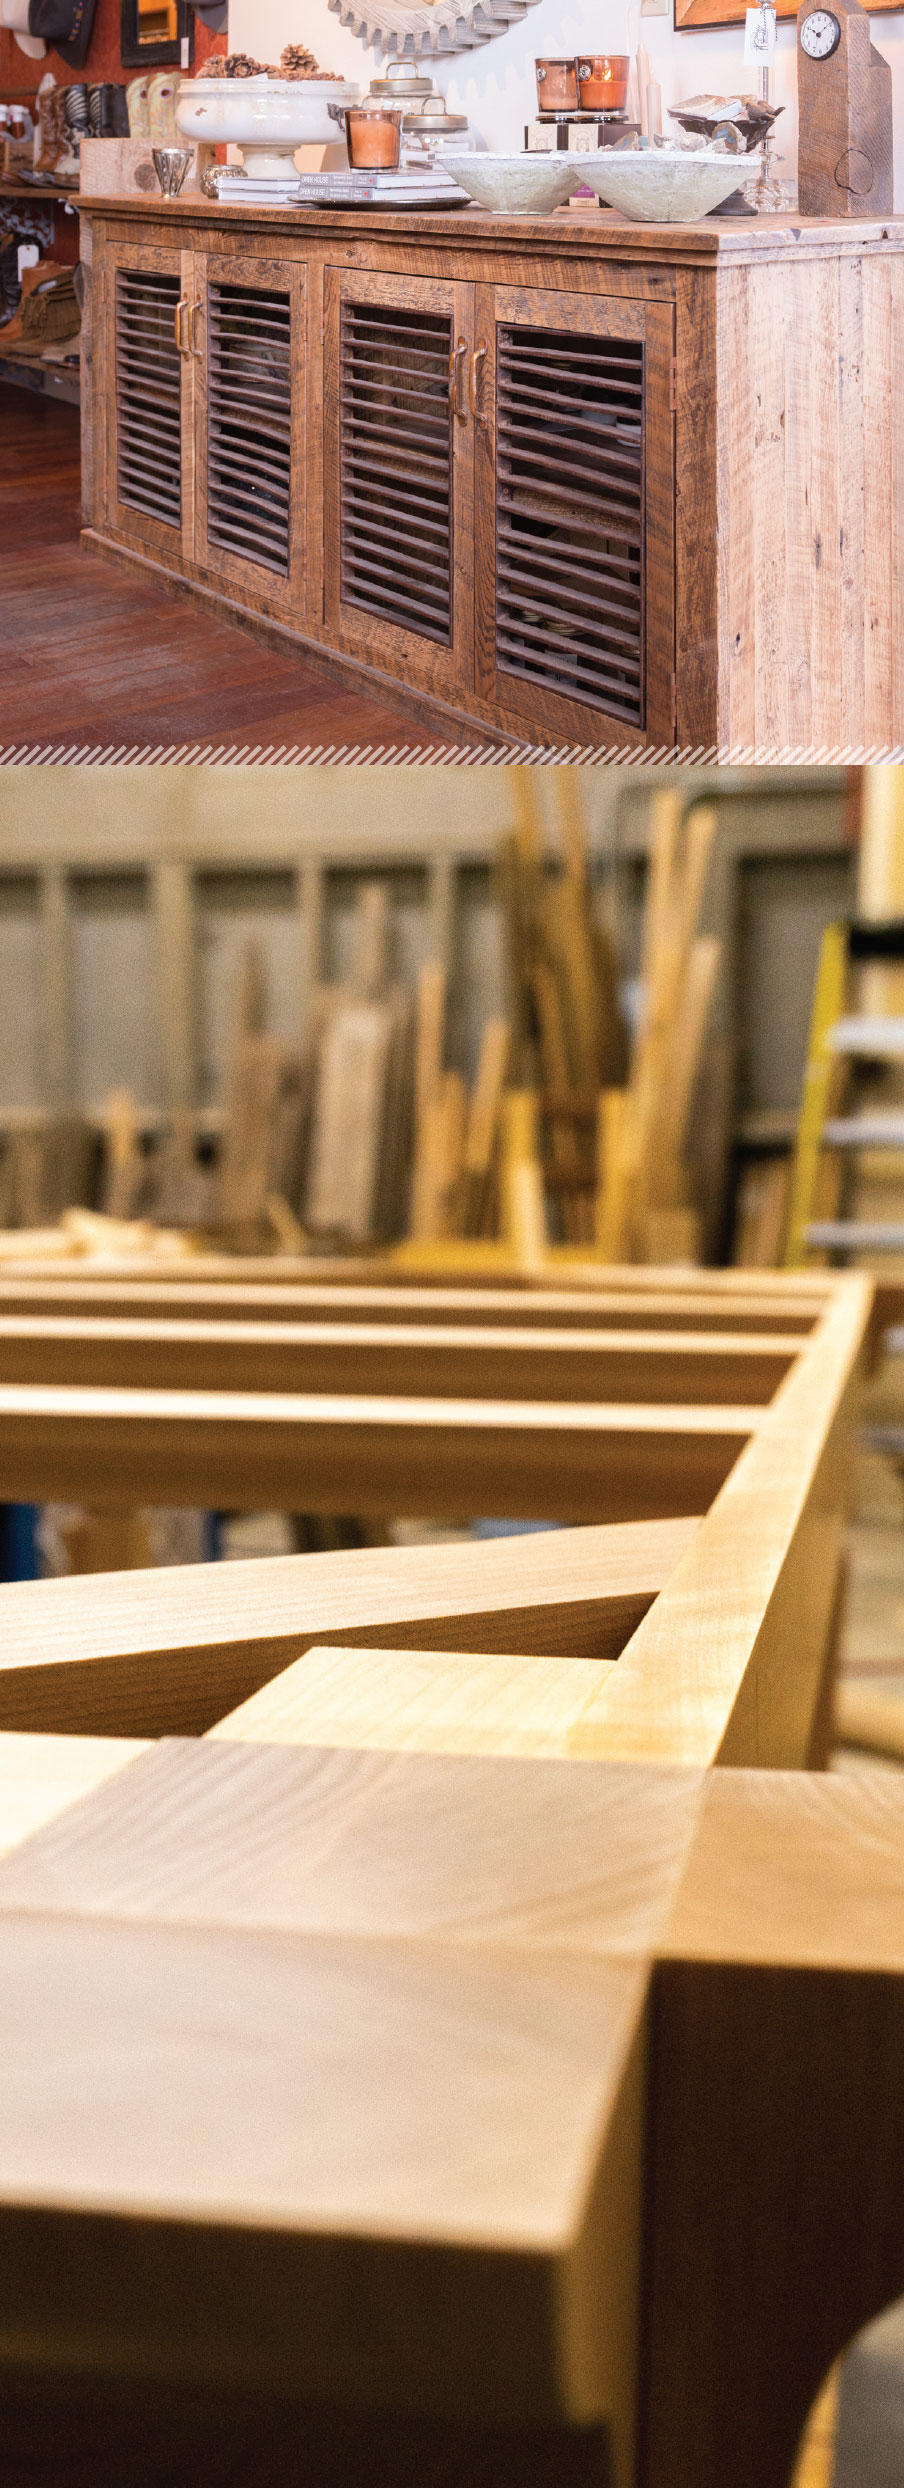 Working With Wood in the Modern West- Bend Cabinet and Framing